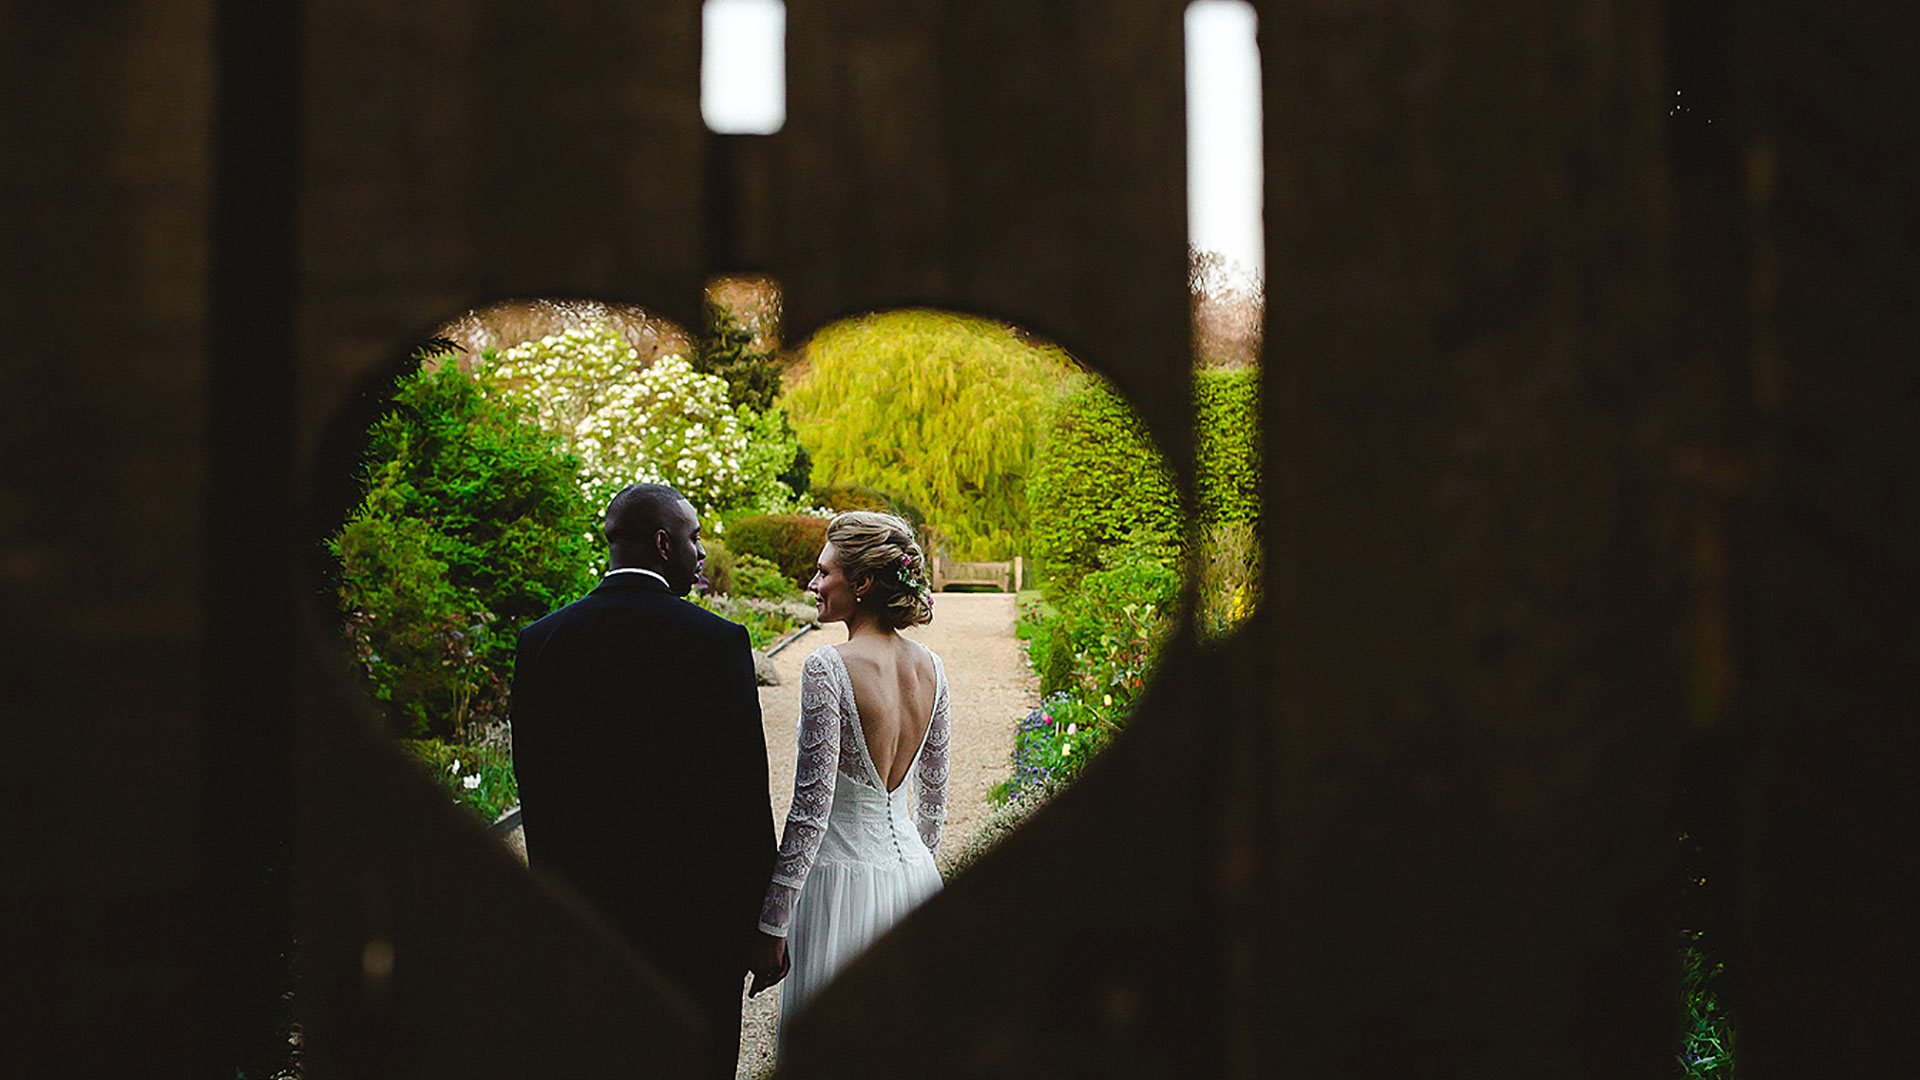 A bride and groom steal a moment behind the heart gate - wedding photos